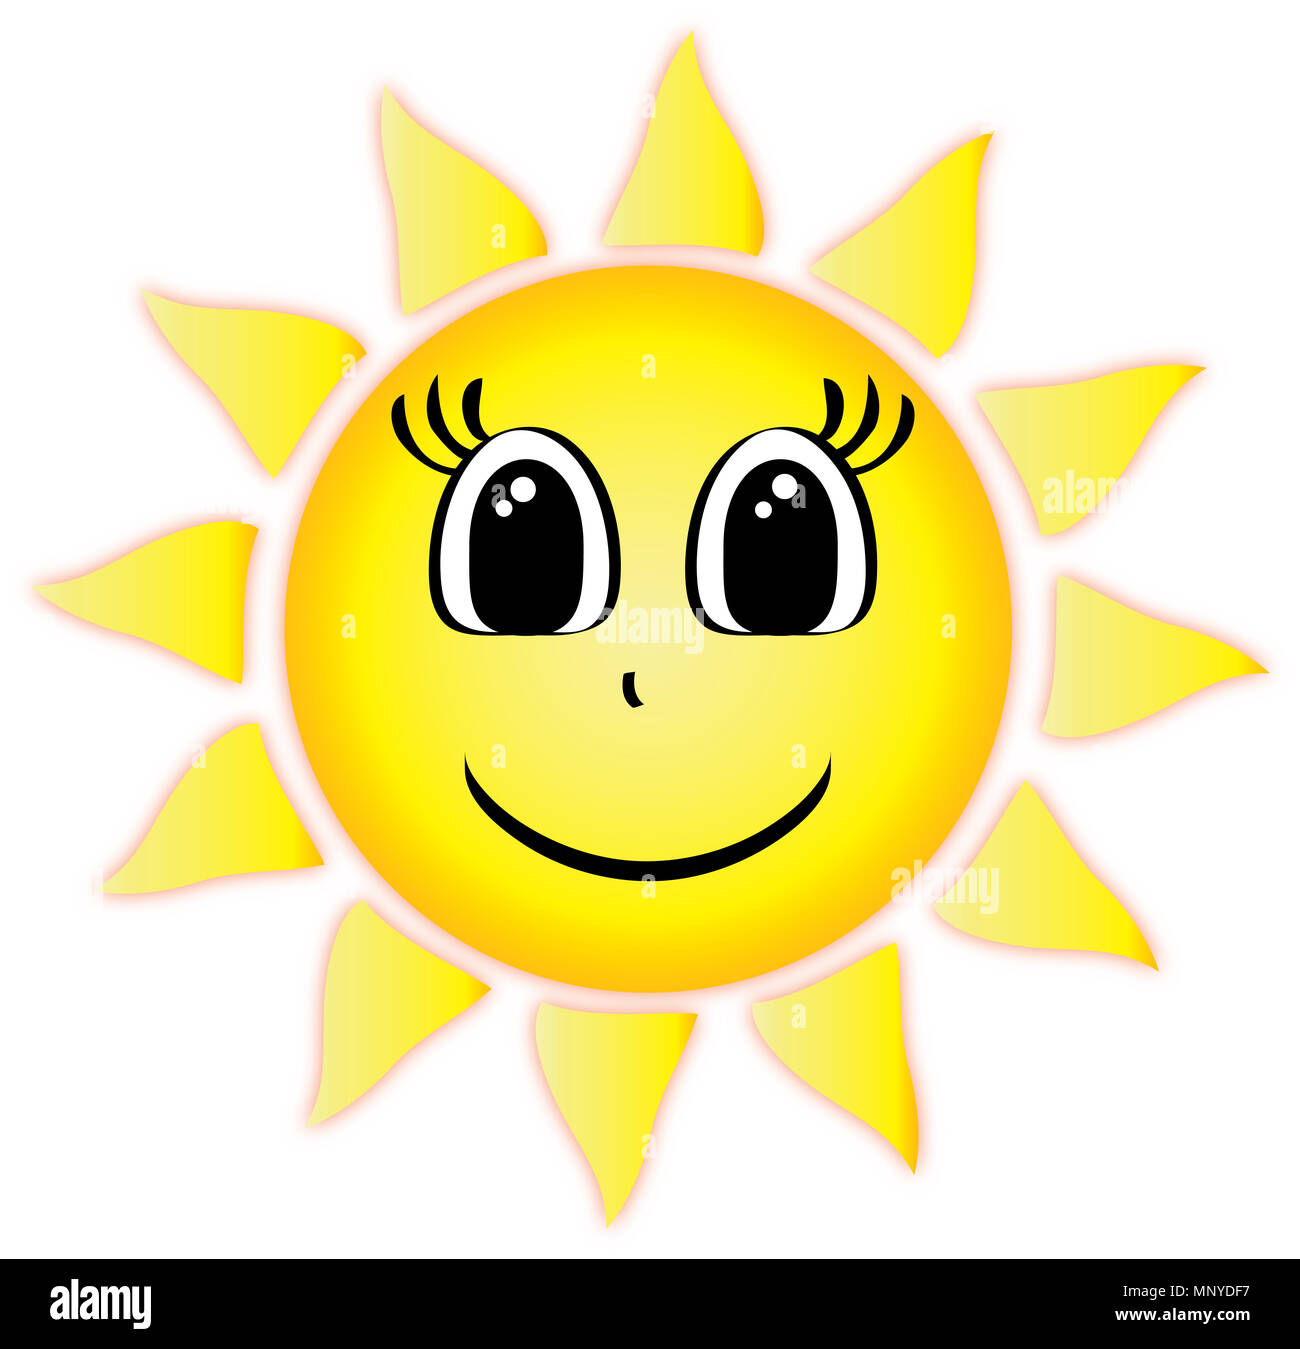 Summer Sun with smiling face - Stock Image